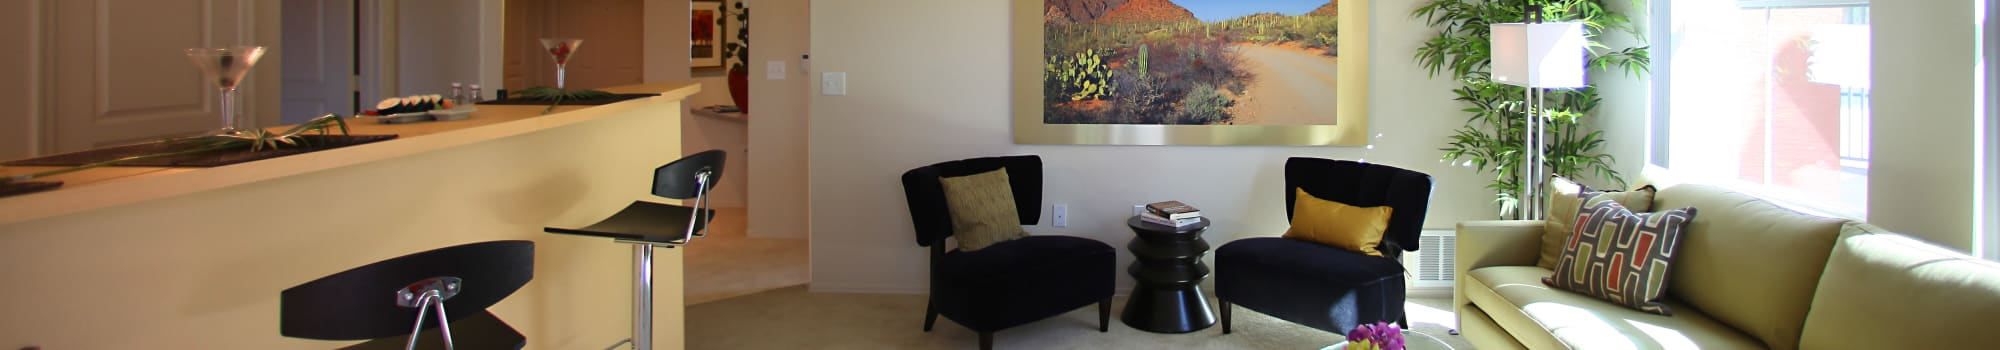 Contact us at Sage Luxury Apartment Homes in Phoenix, Arizona